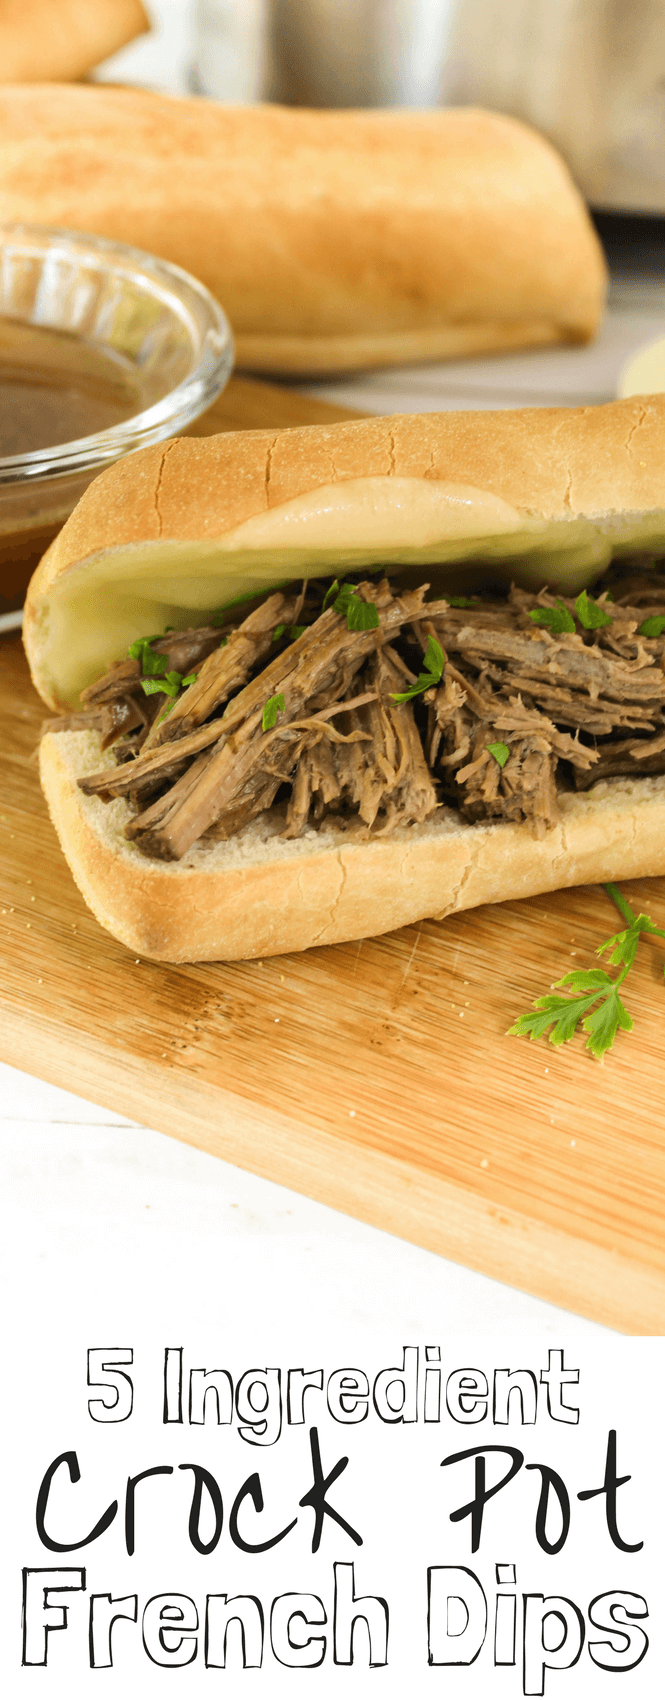 5 ingredient crockpot french dips